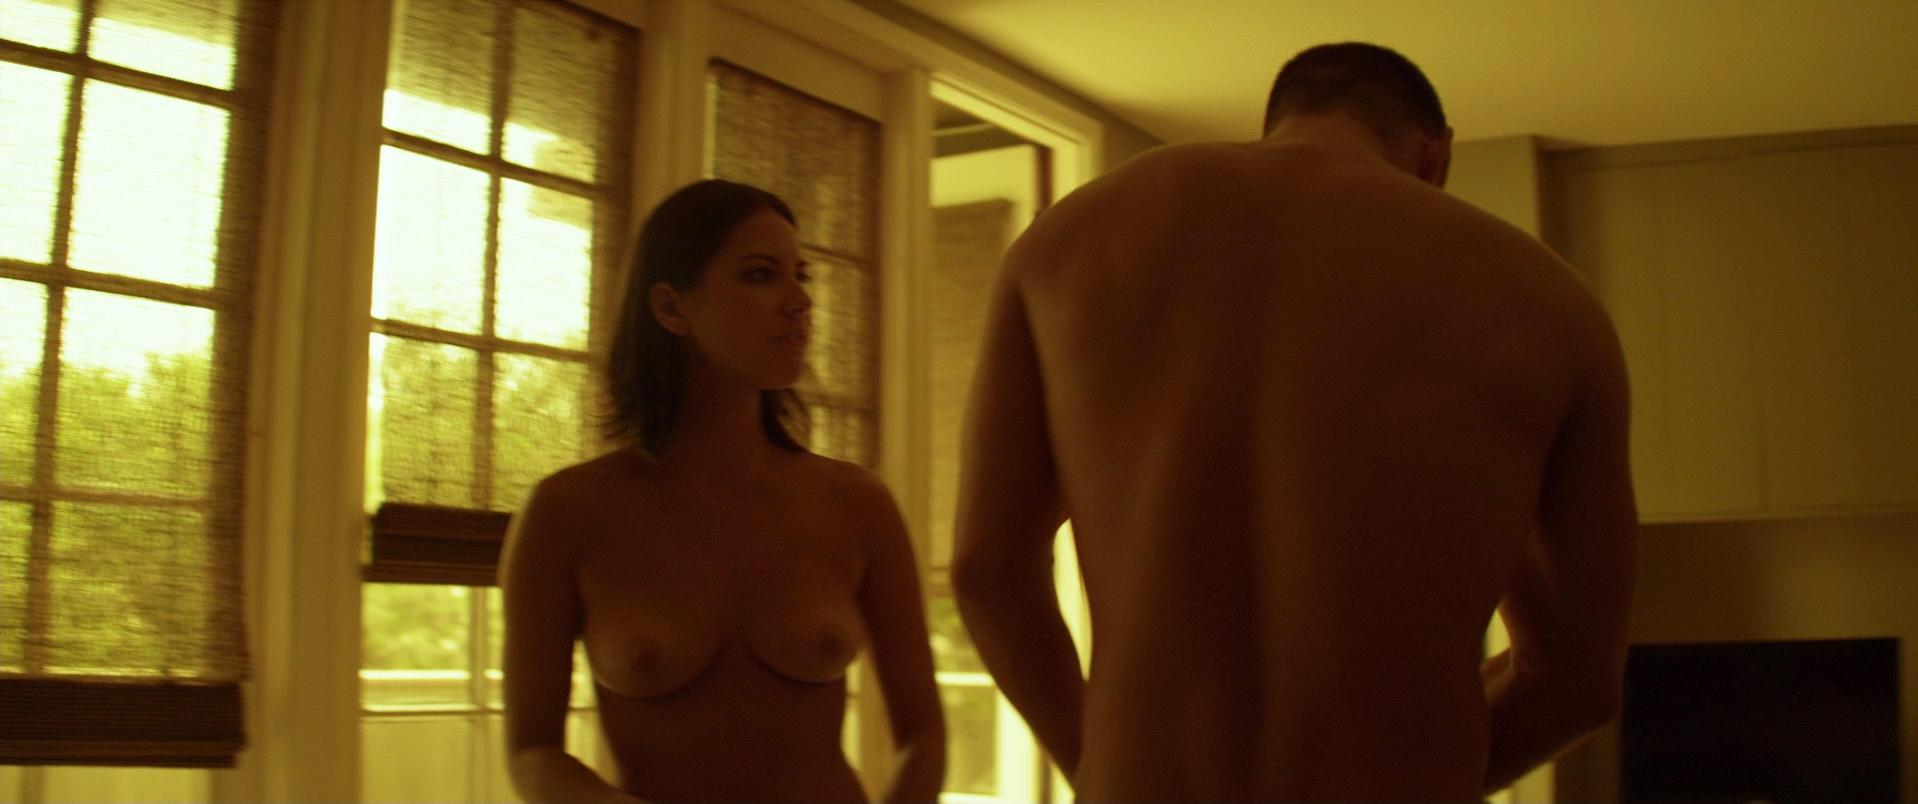 Nude Video Celebs  Olivia Munn Nude - Magic Mike 2012-7552